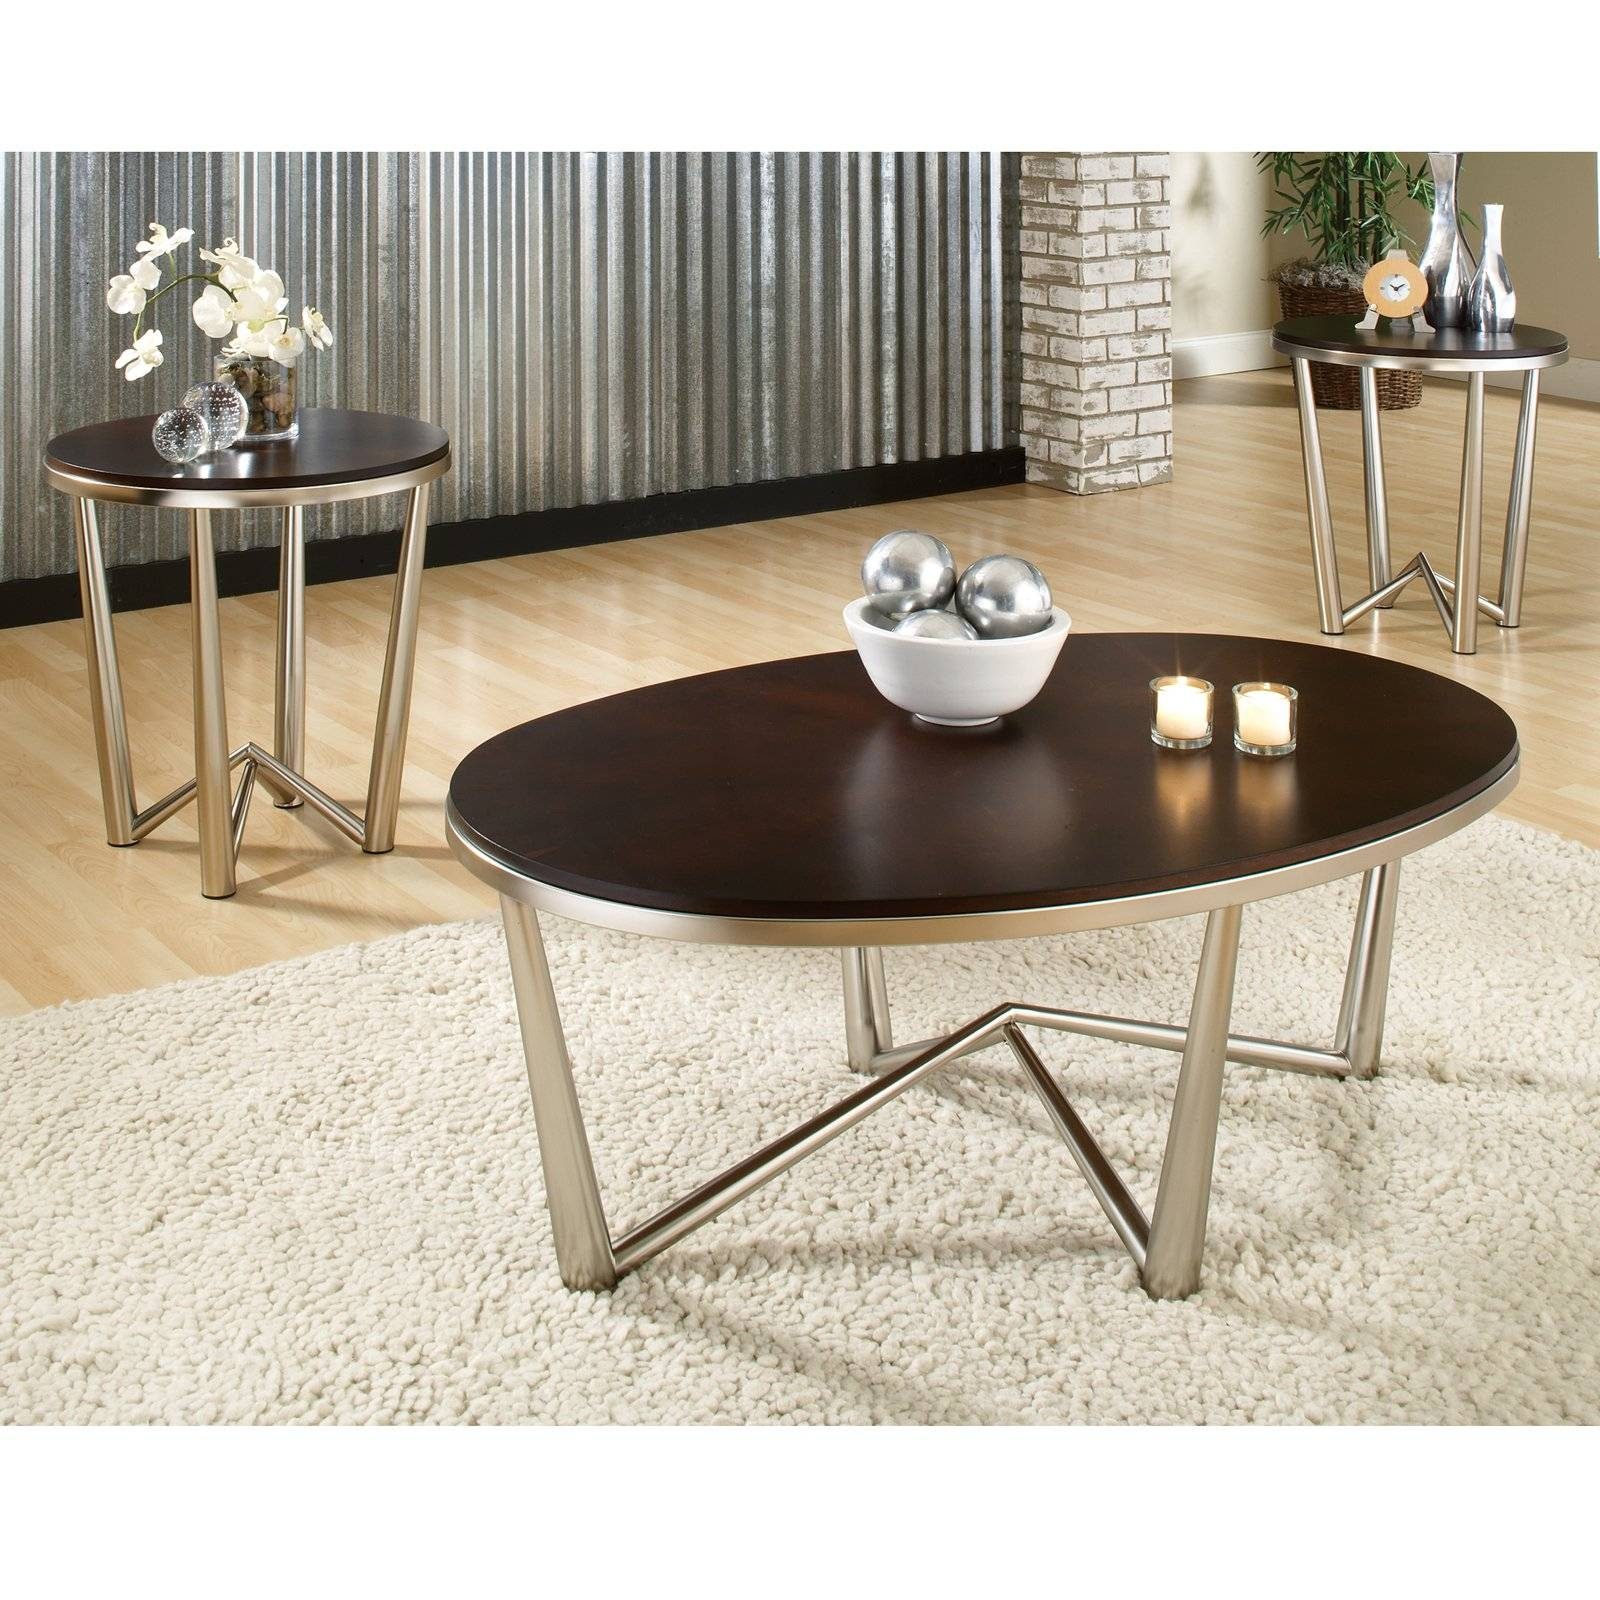 Coffee Table : 3 Coffee Table Set My Existing Coffee Table In Throughout Coffee Tables With Oval Shape (View 7 of 30)